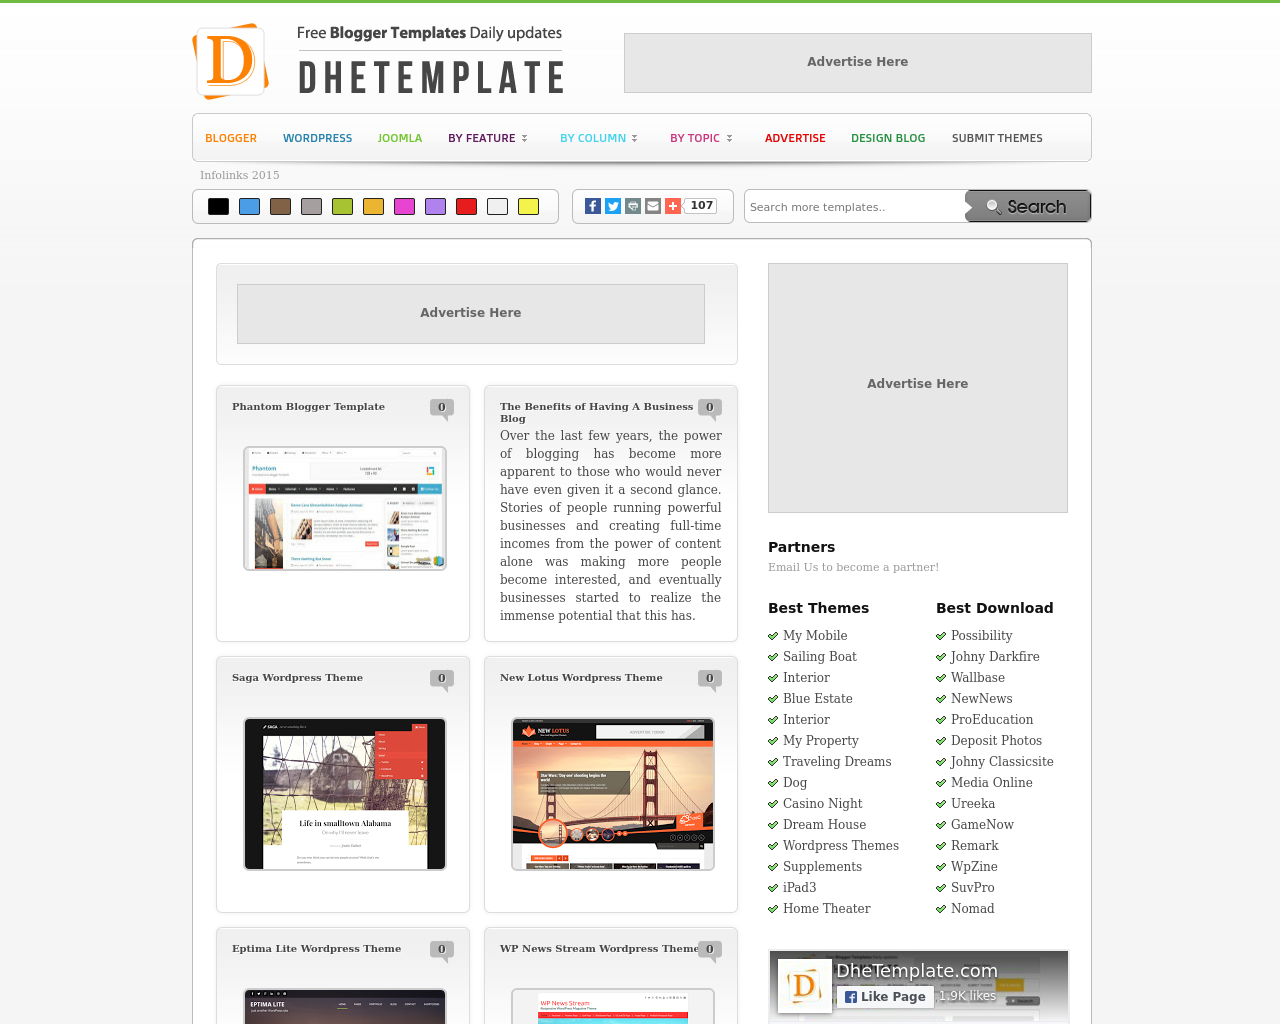 DHETemplate-Advertising-Reviews-Pricing